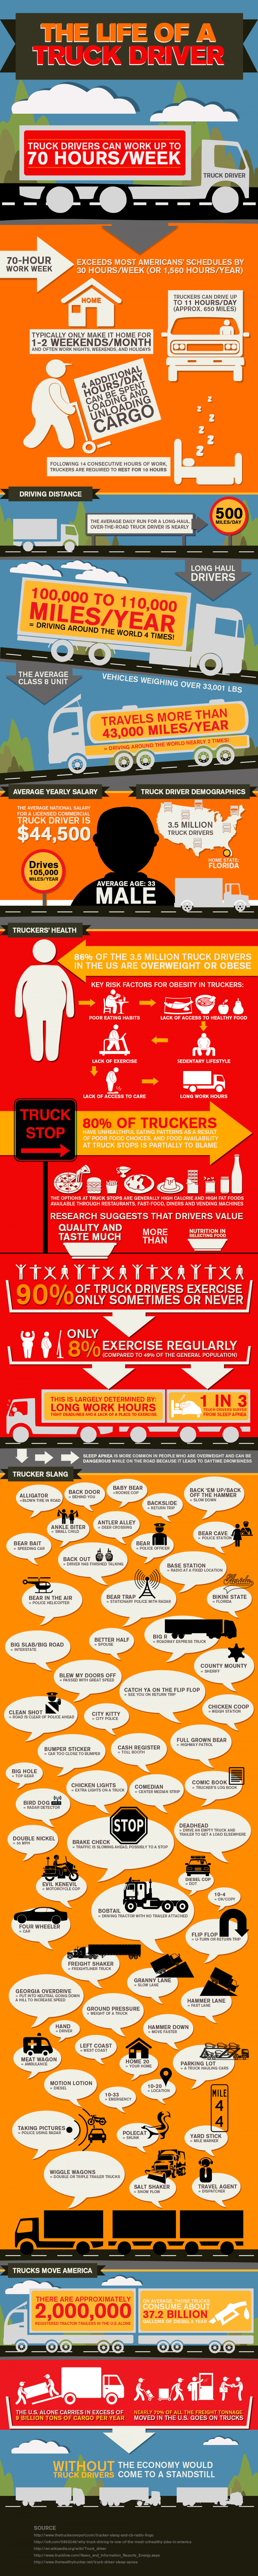 The Life of a Truck Driver Infographic